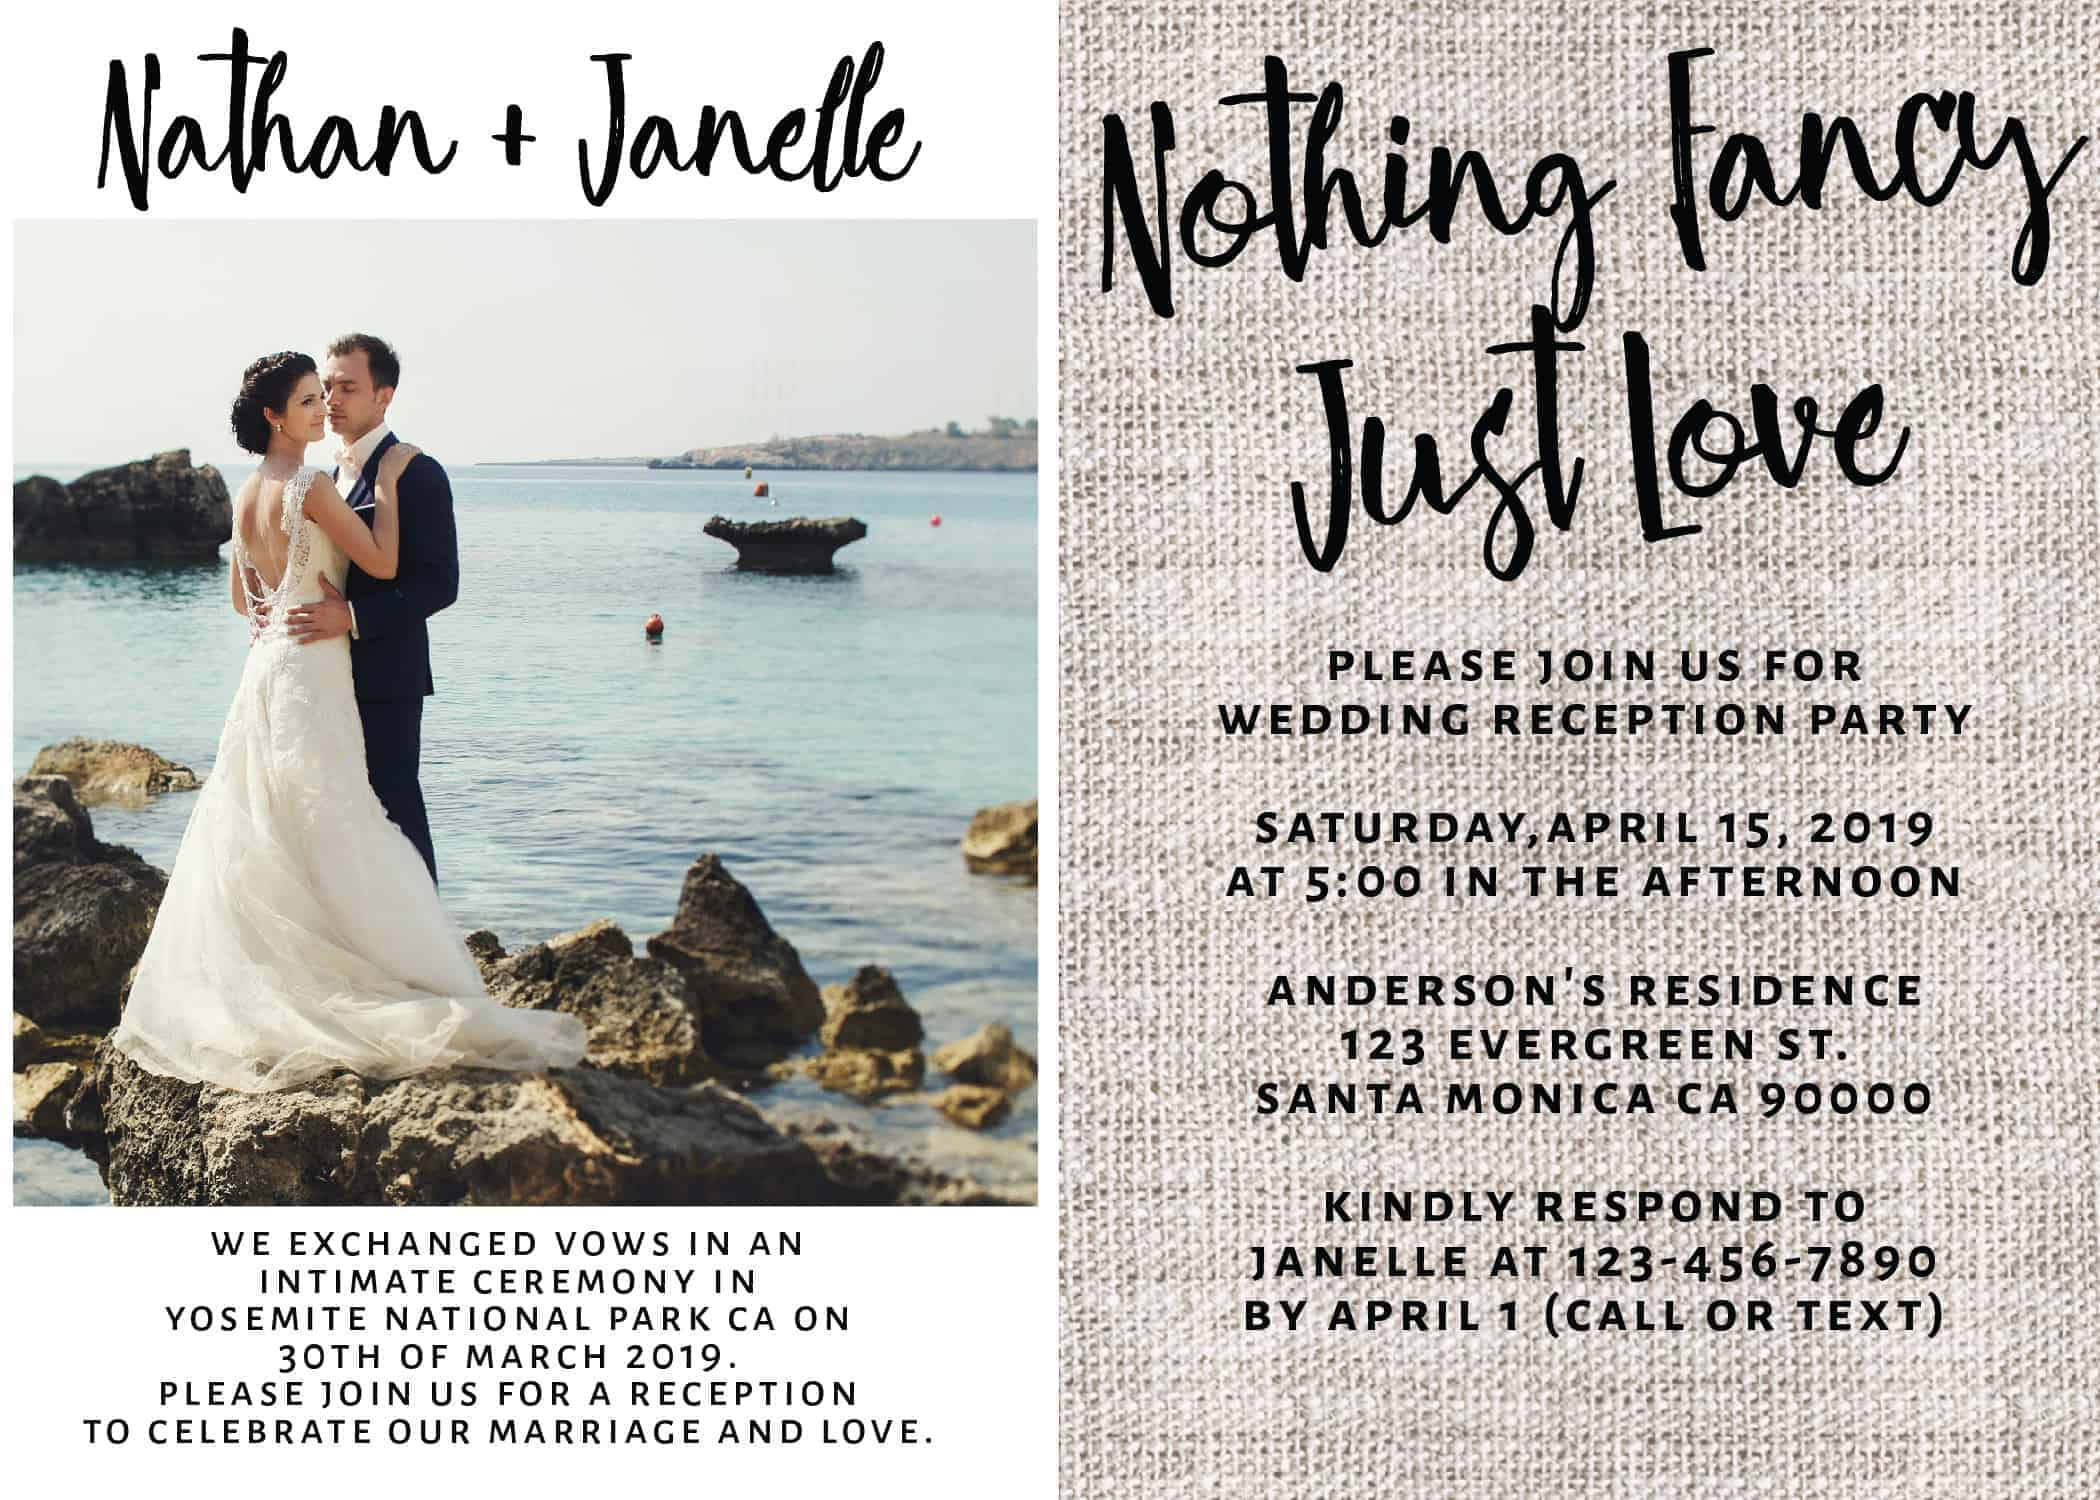 Rustic Burlap Wedding Reception Invitation Cards, Nothing Fancy Just Love, Casual Party BBQ Party Wedding Reception Cards, Add Your Own Photo